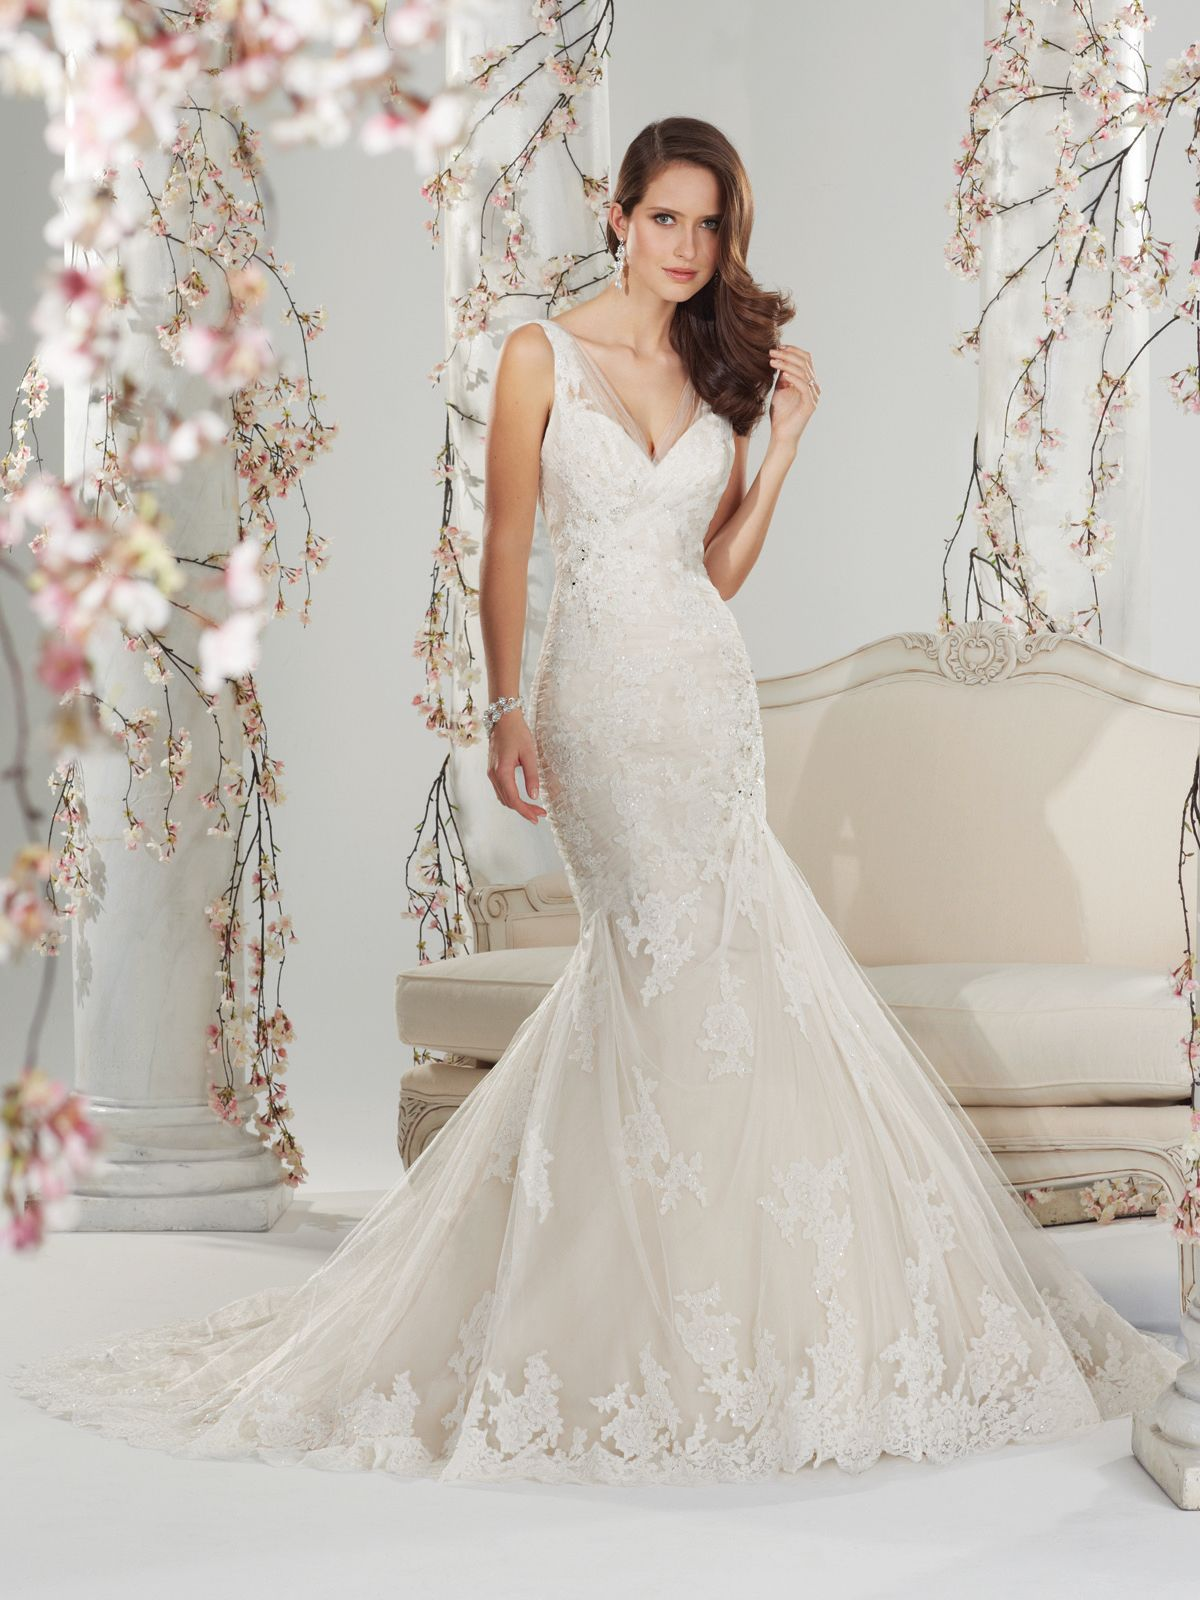 The Best Wedding Dress Designers Part 10 | Pinterest | Mermaid ...